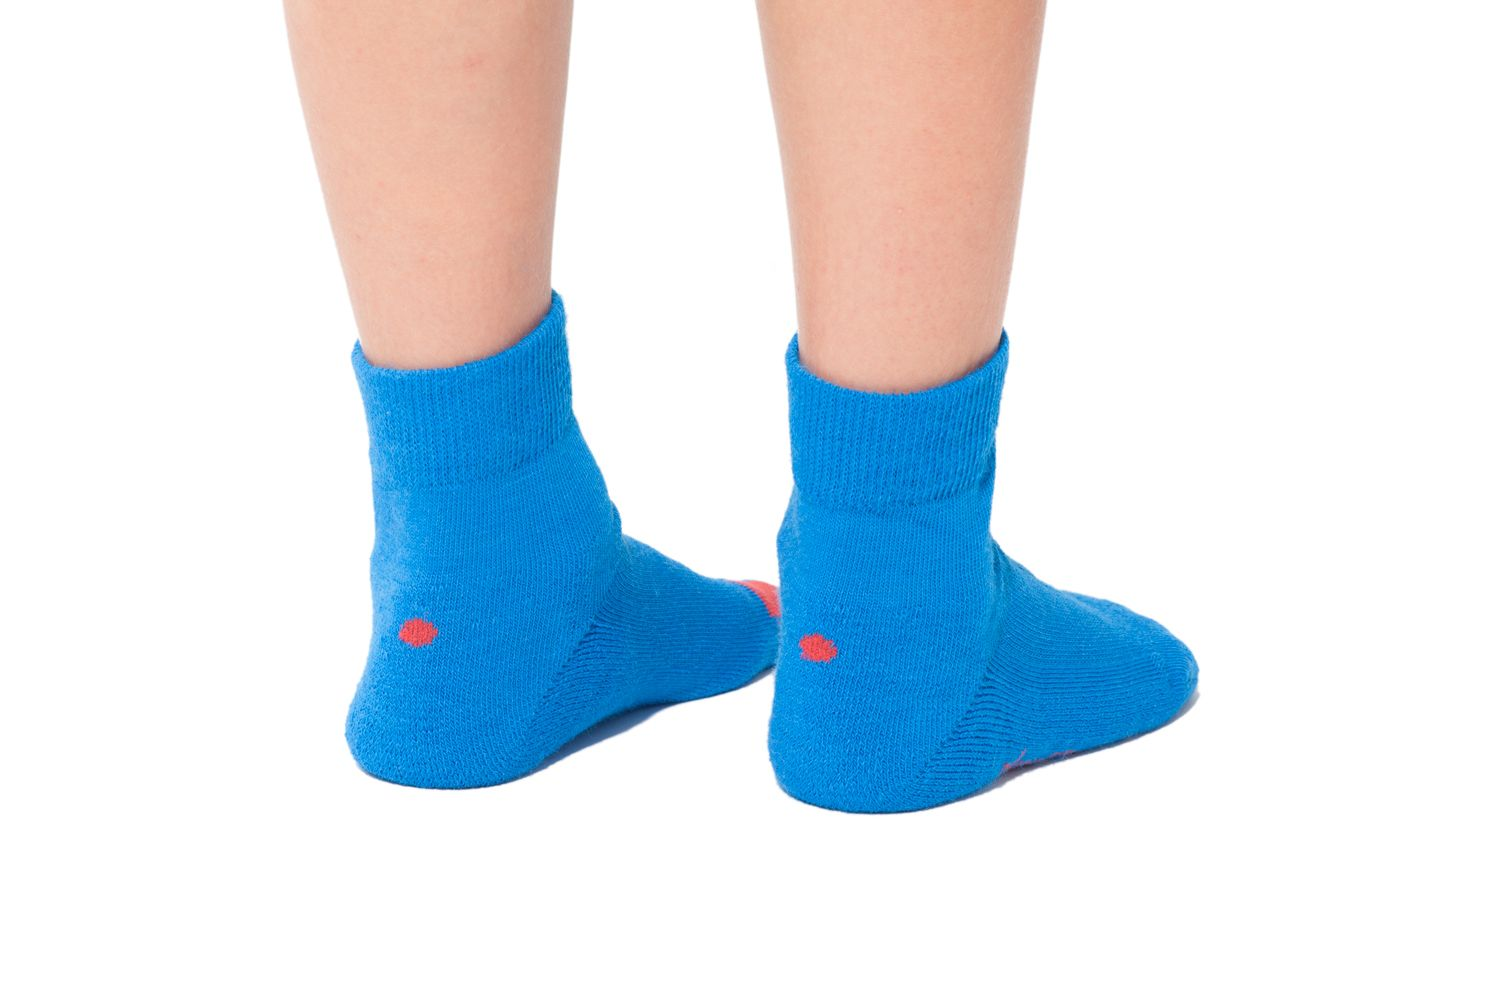 plus12socks Socken blau an Kinderfüssen Hinteransicht